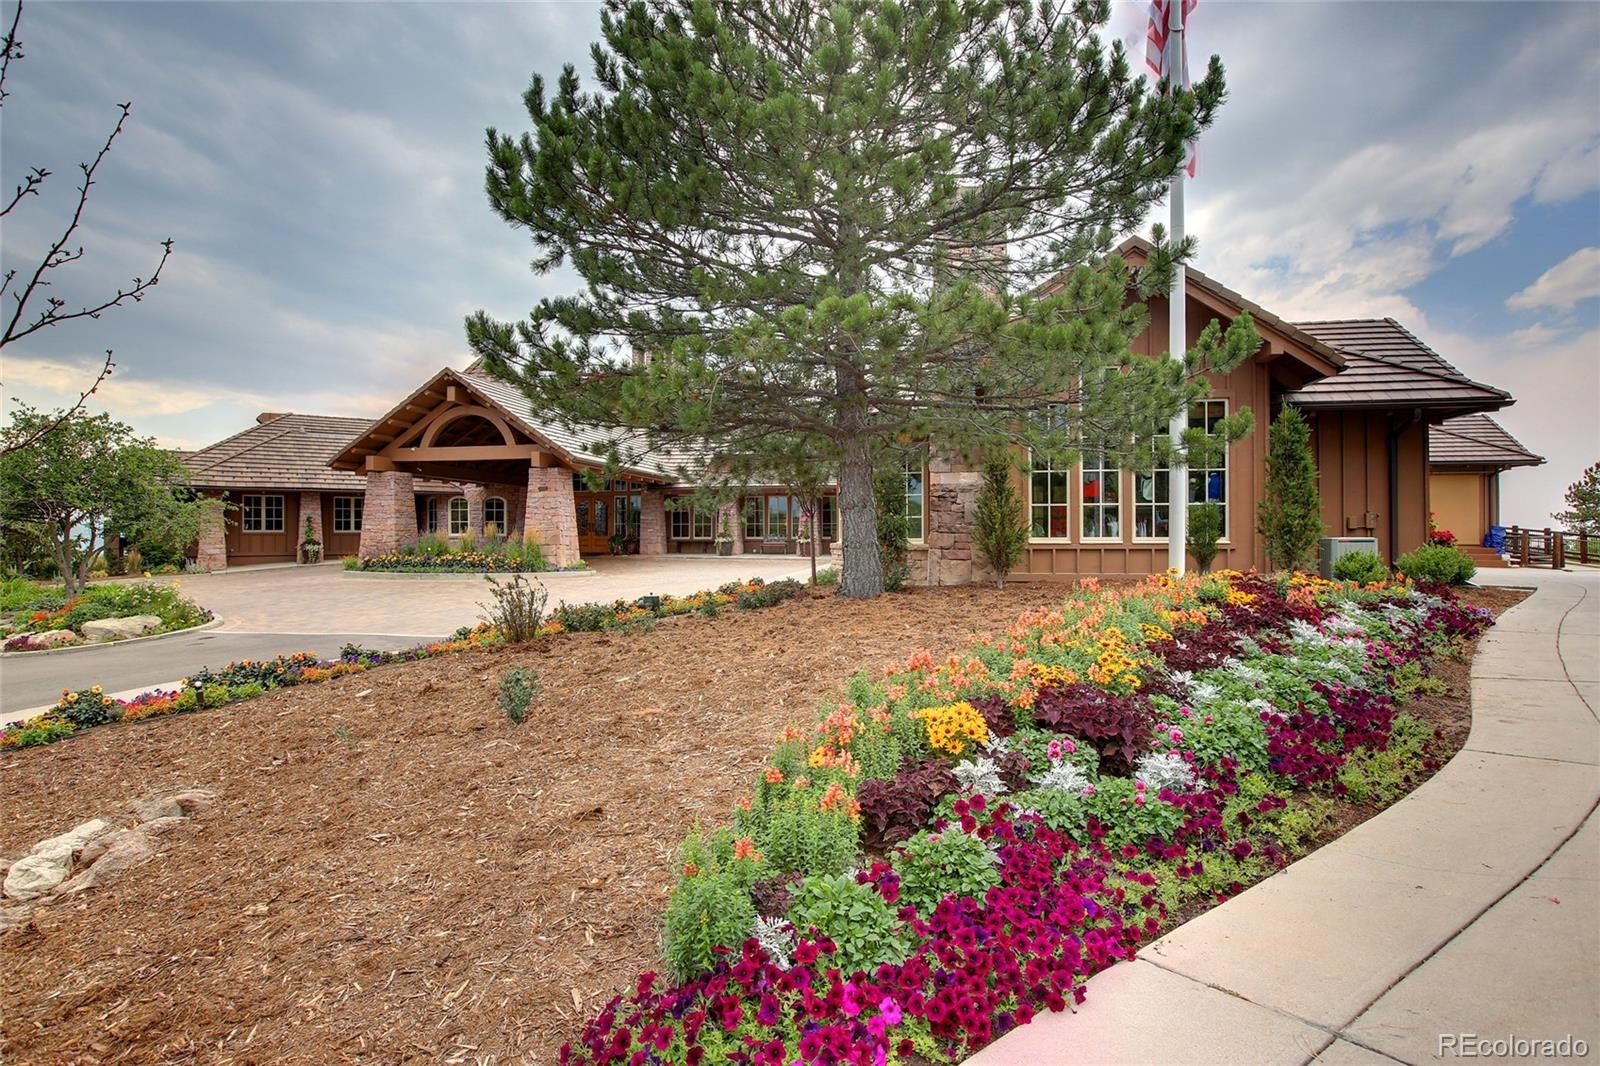 MLS# 2980484 - 15 - 992 Country Club Parkway, Castle Rock, CO 80108